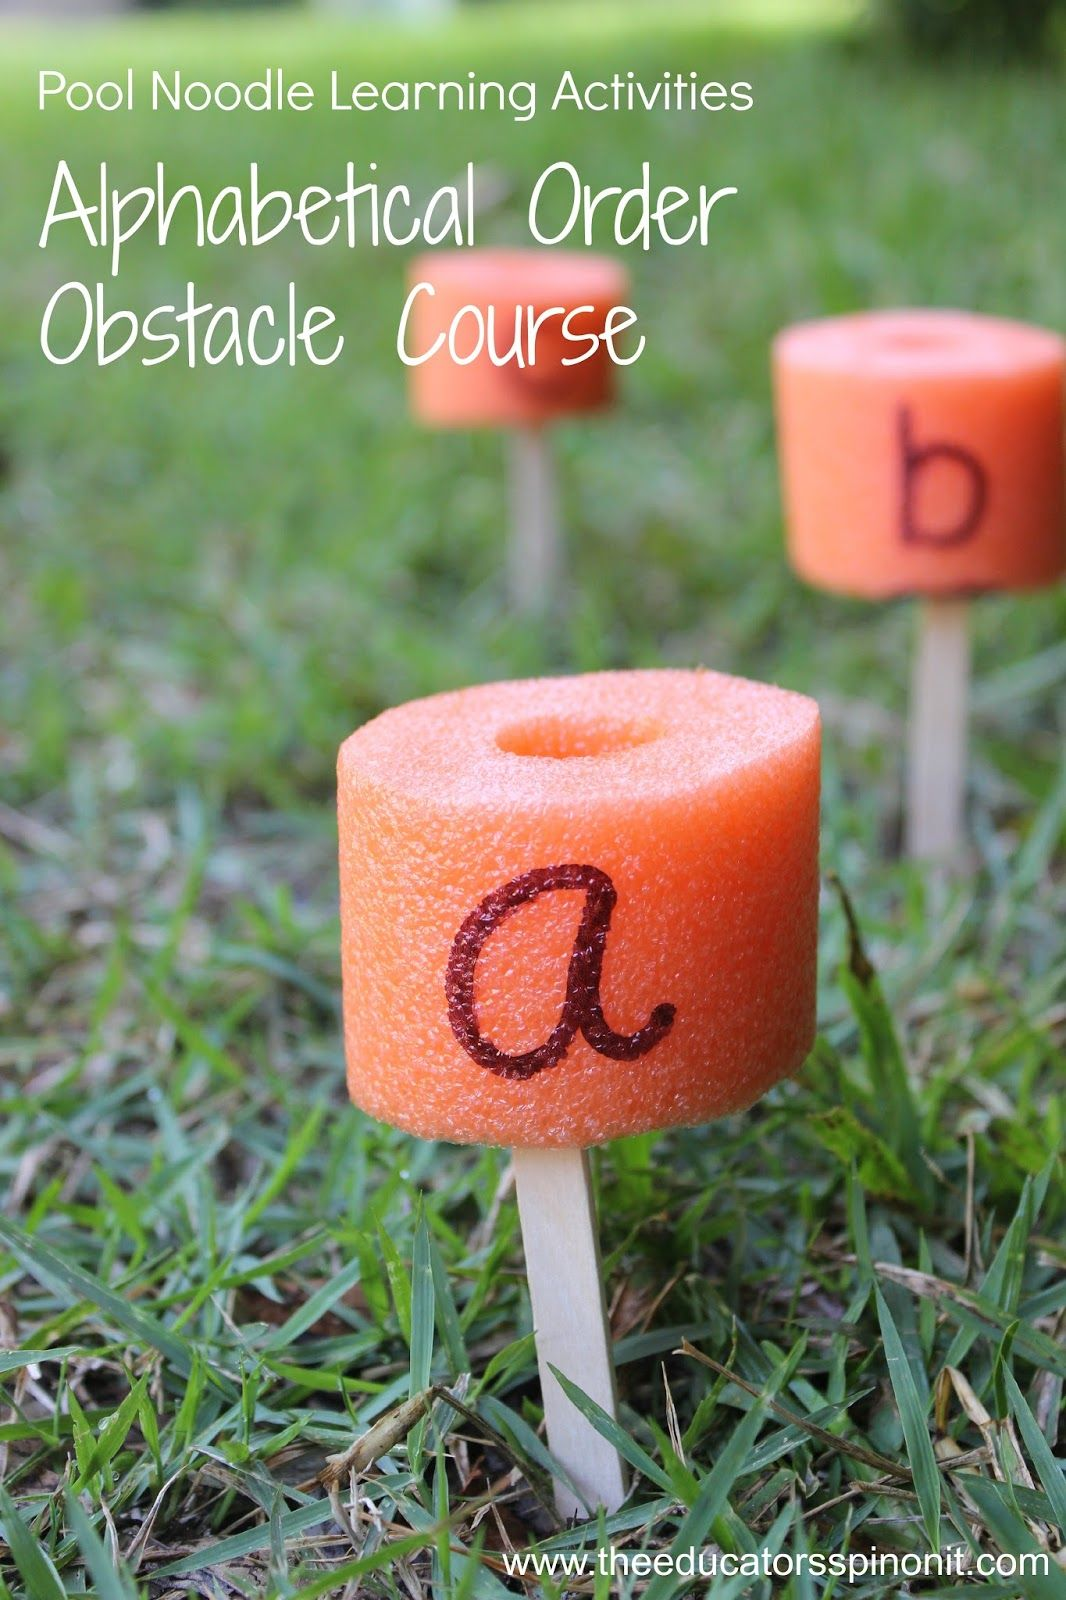 Pool Noodle Learning Activity Alphabetical Order Obstacle Course